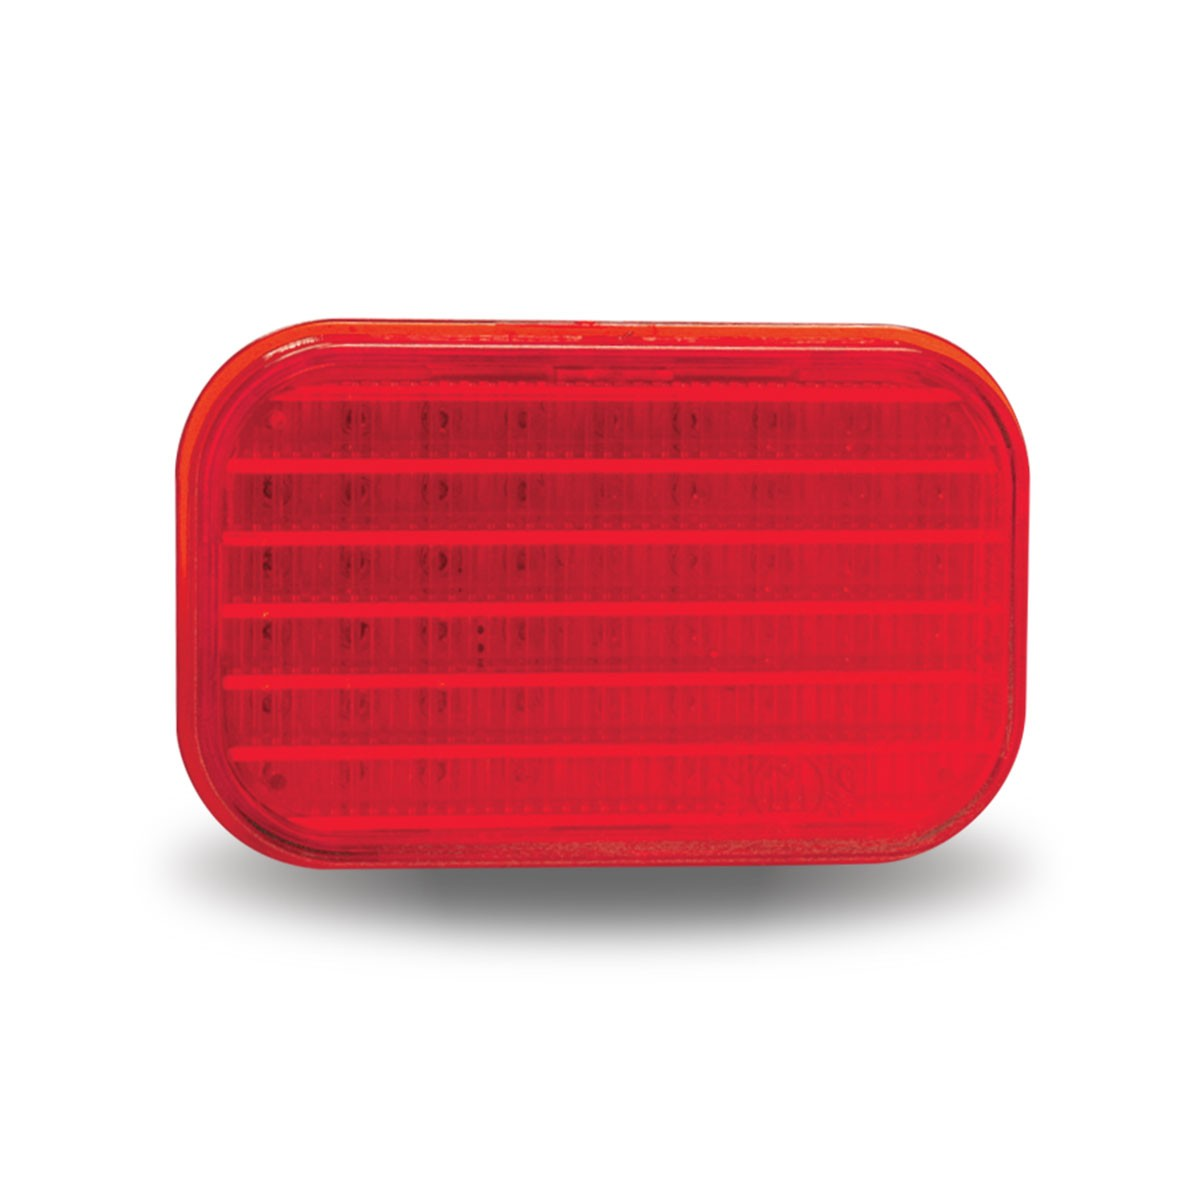 Red Stop Turn amp Tail LED Square Light 32 Diodes